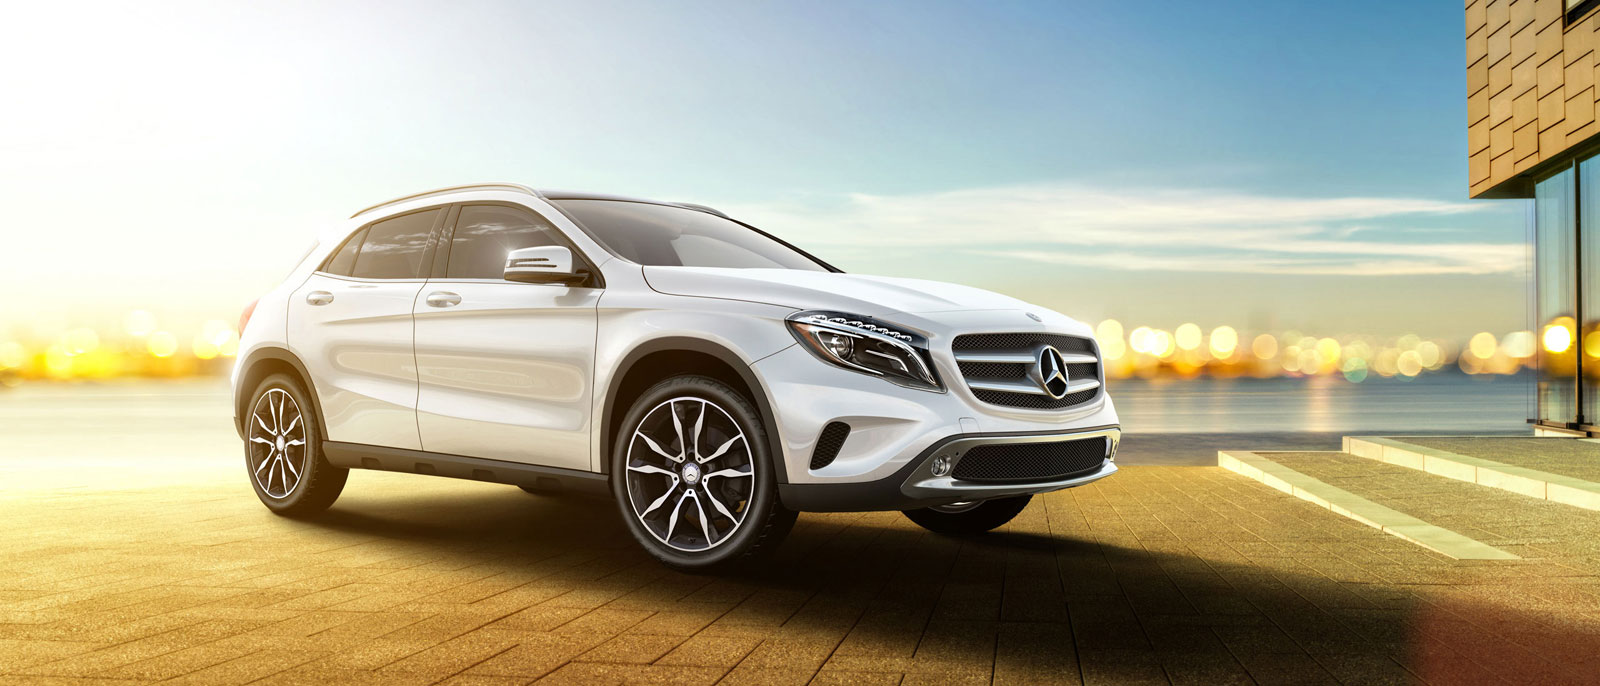 Conquer any road in the 2016 mercedes benz gla250 4matic for Mercedes benz gla250 lease